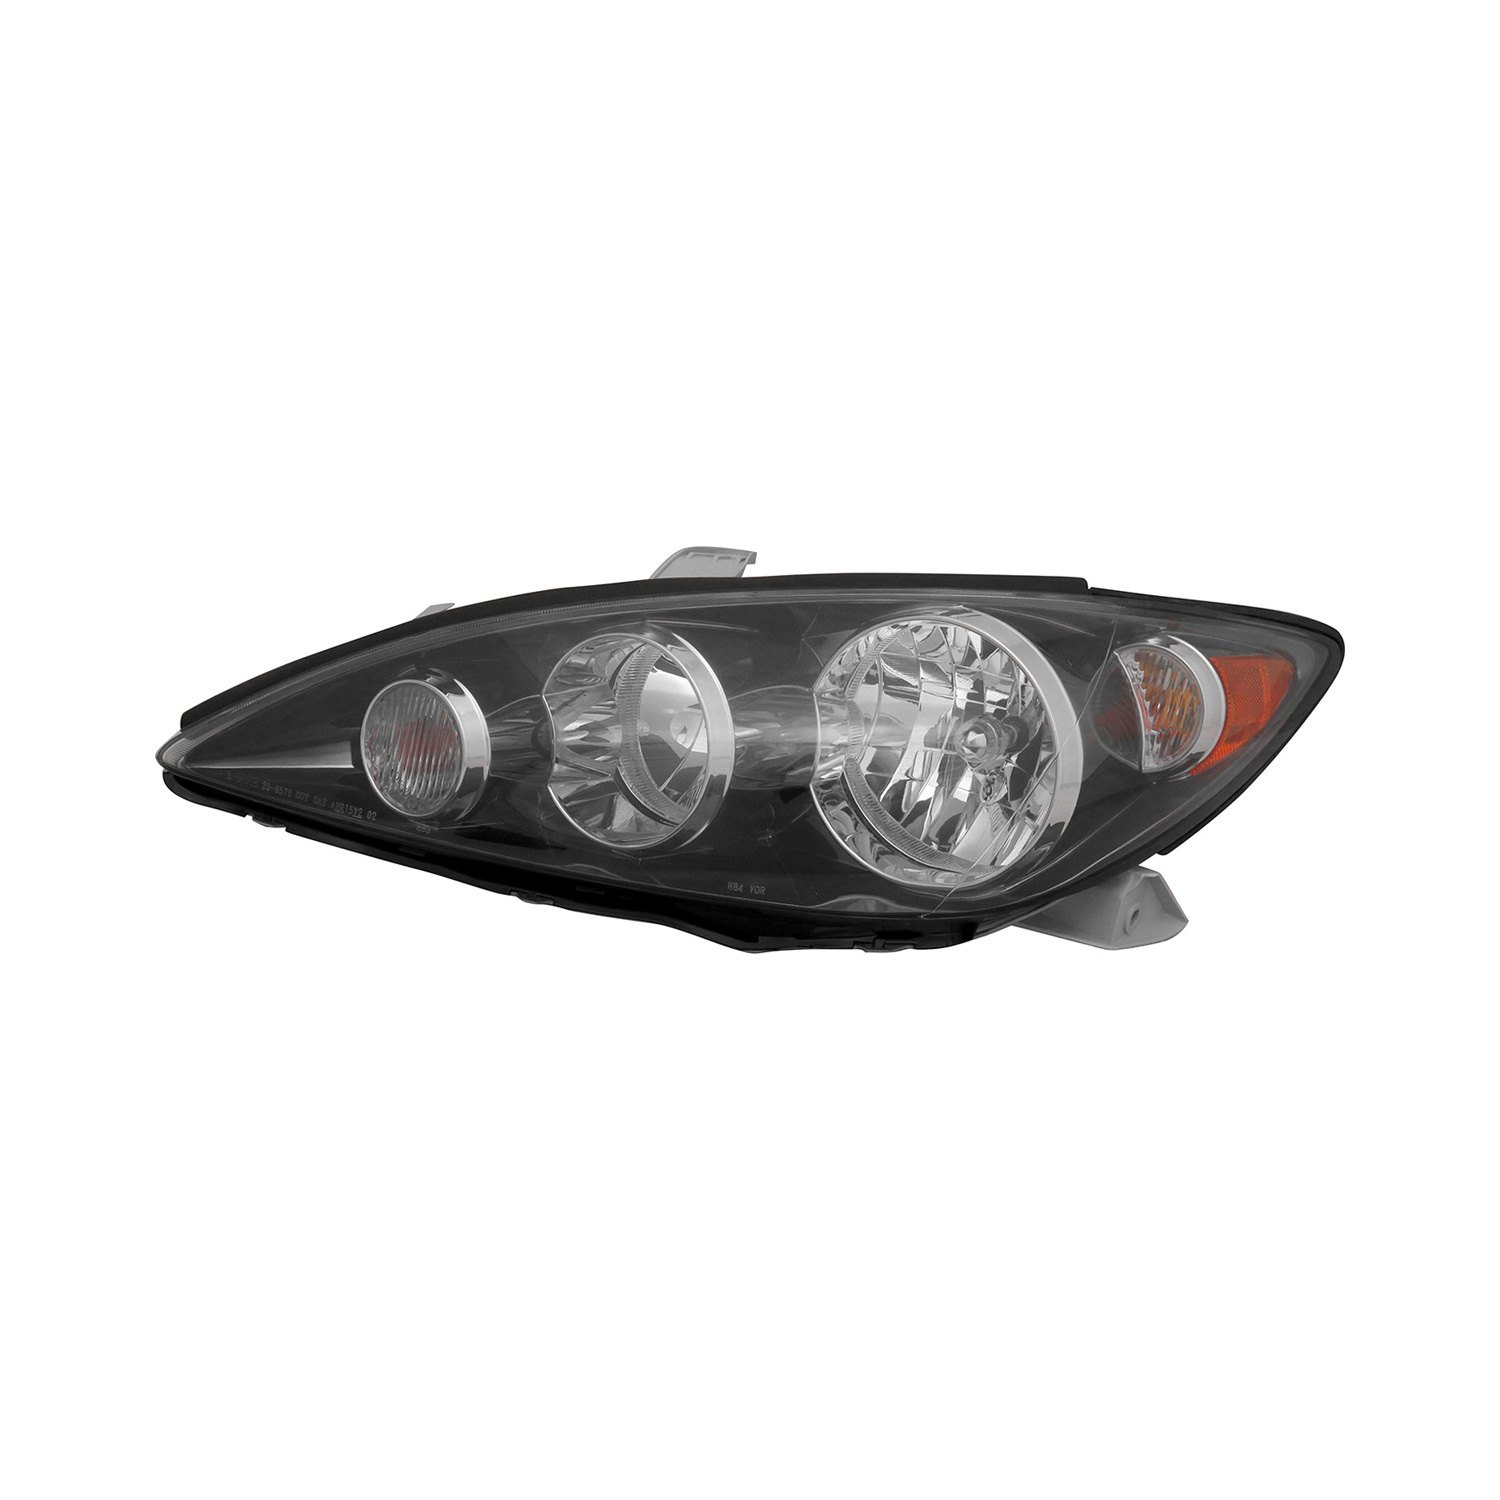 tyc toyota camry 2005 2006 replacement headlight. Black Bedroom Furniture Sets. Home Design Ideas